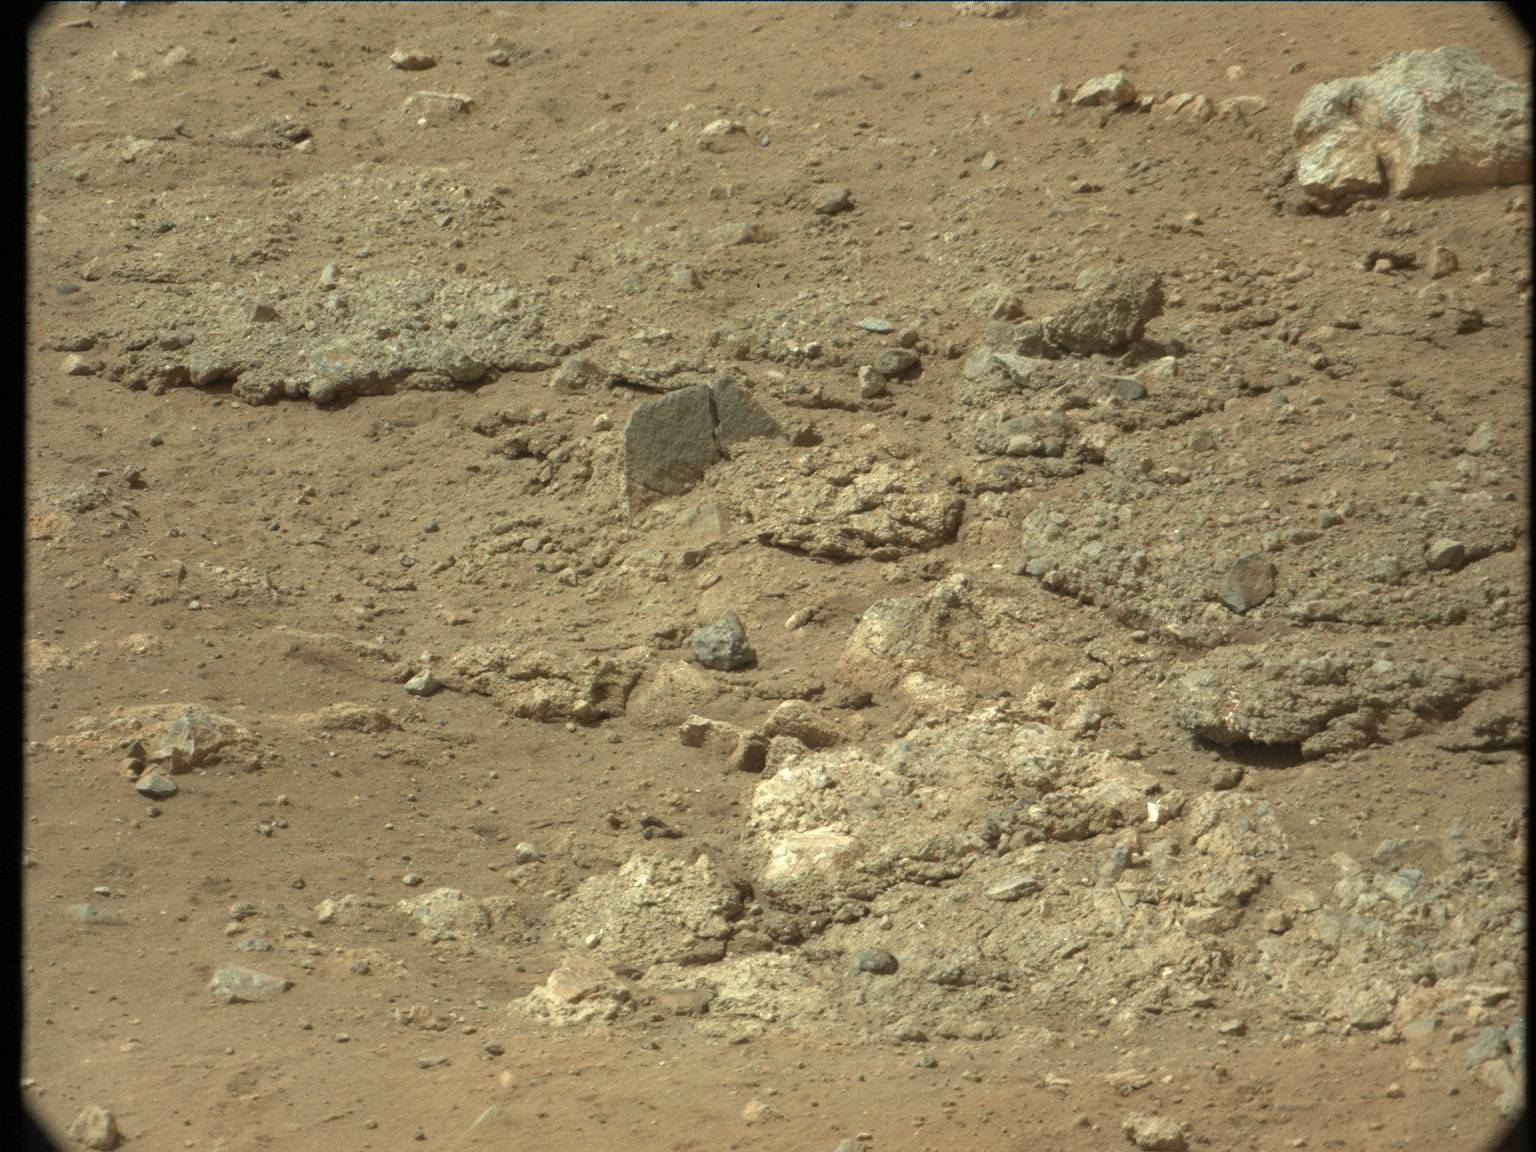 nasa mars lizard - photo #15